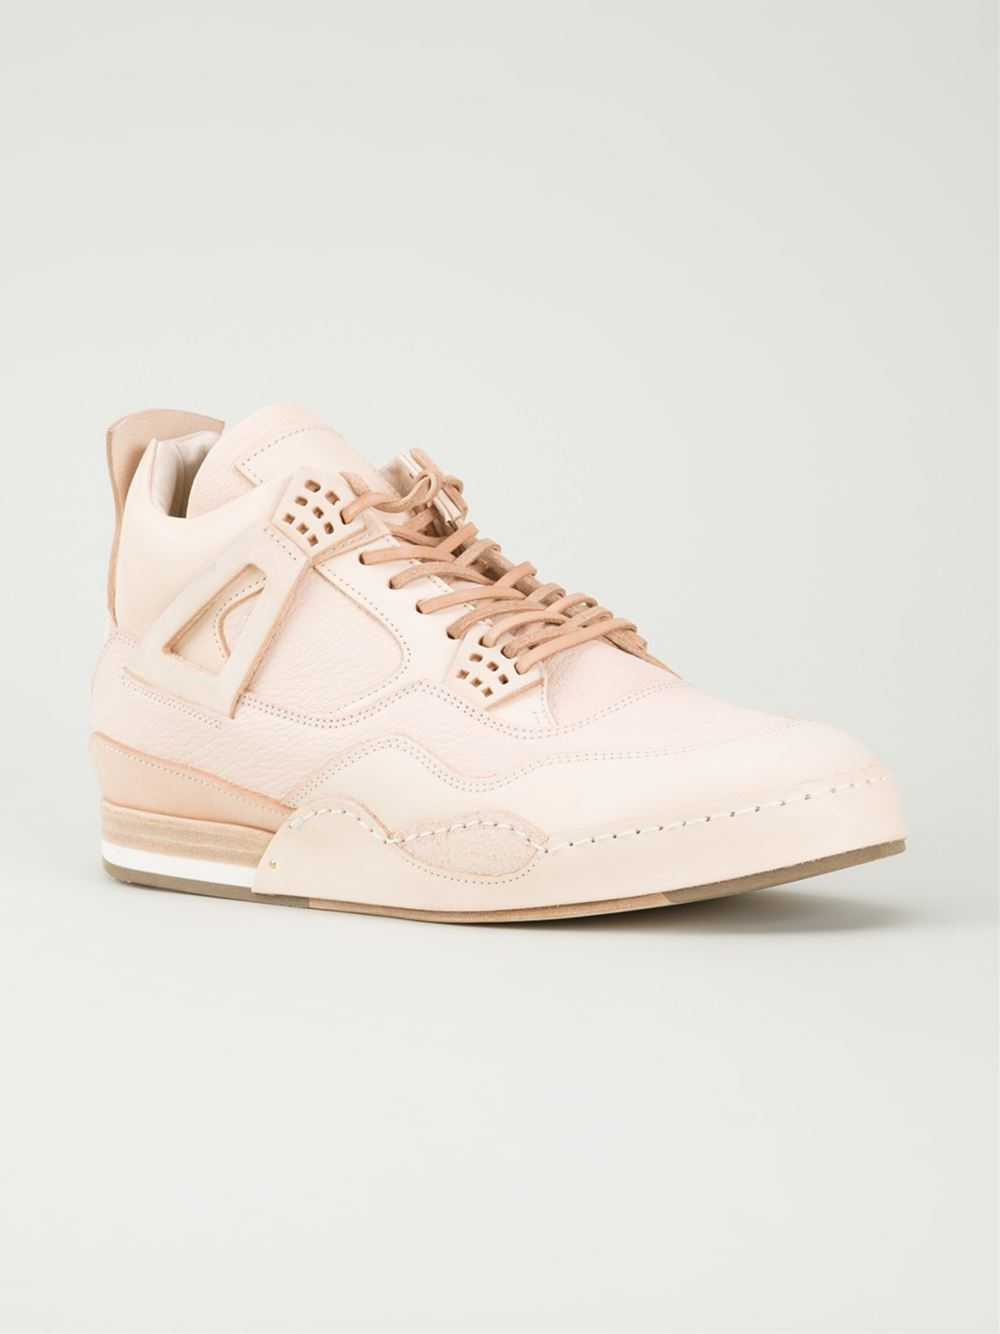 MIP-10 Leather Sneakers - Nude & Neutrals HENDER SCHEME L8HKCQOEGE